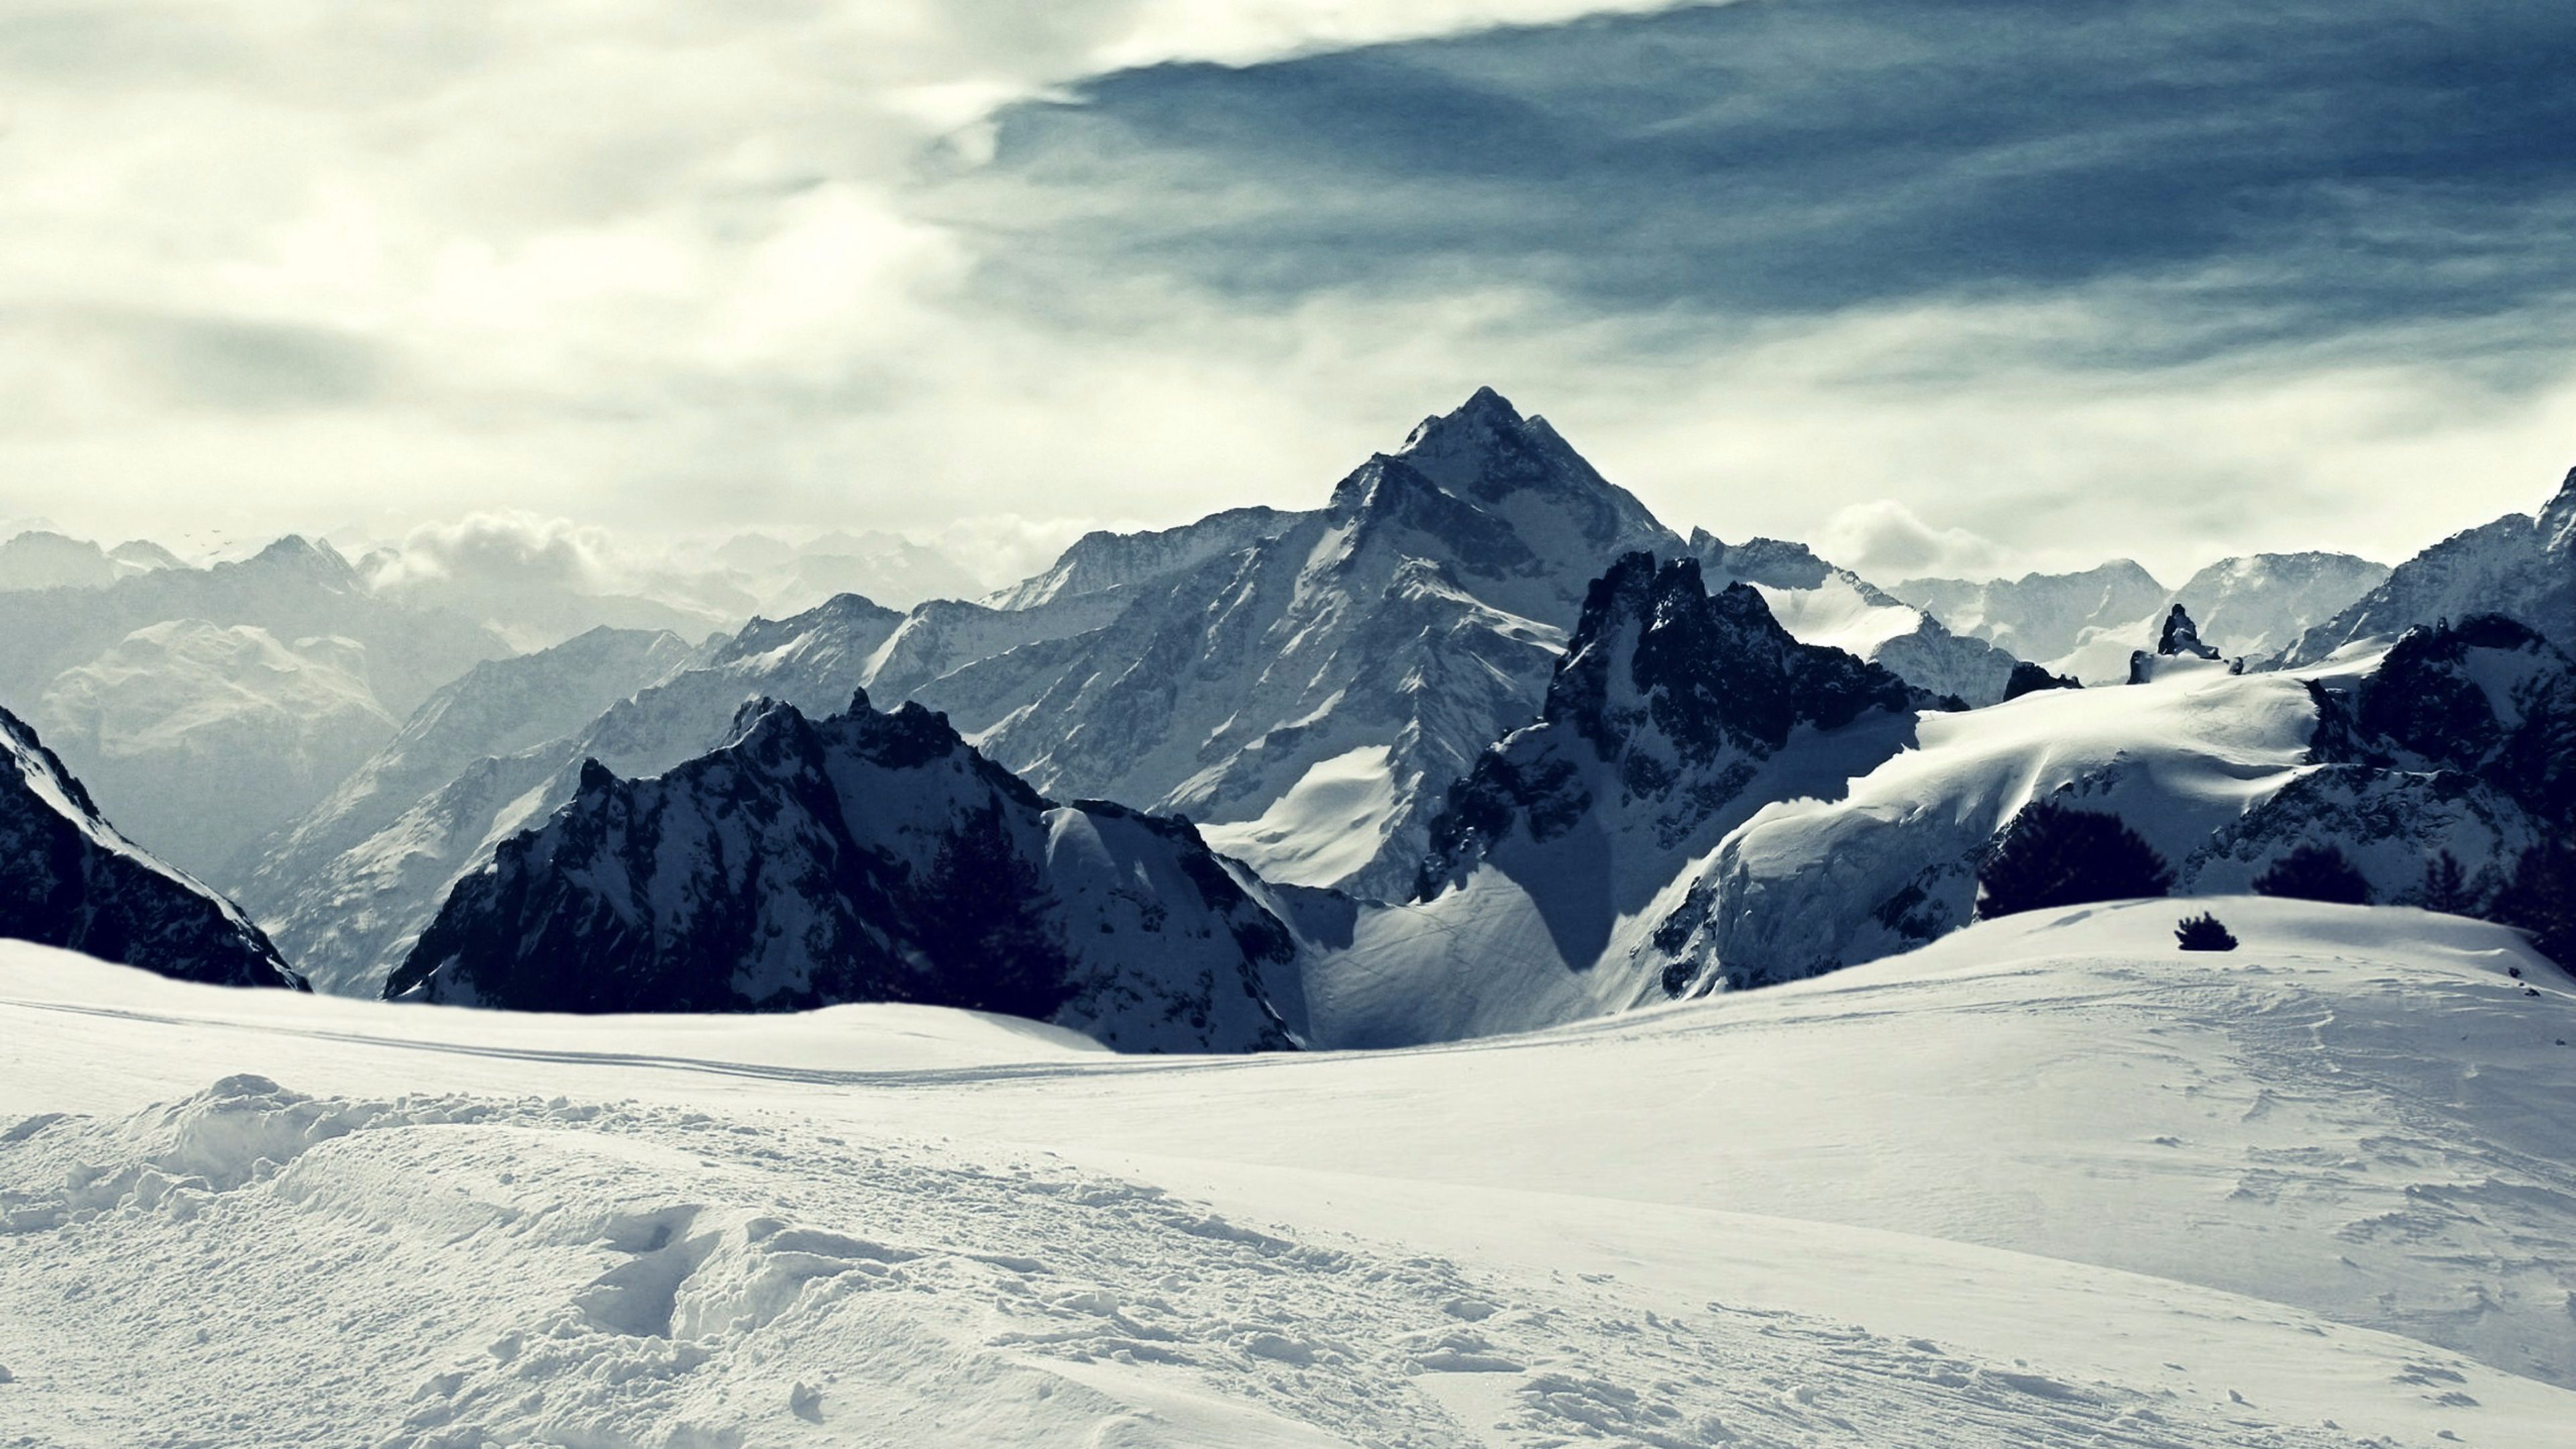 Snow 4K Wallpapers - Top Free Snow 4K Backgrounds - WallpaperAccess